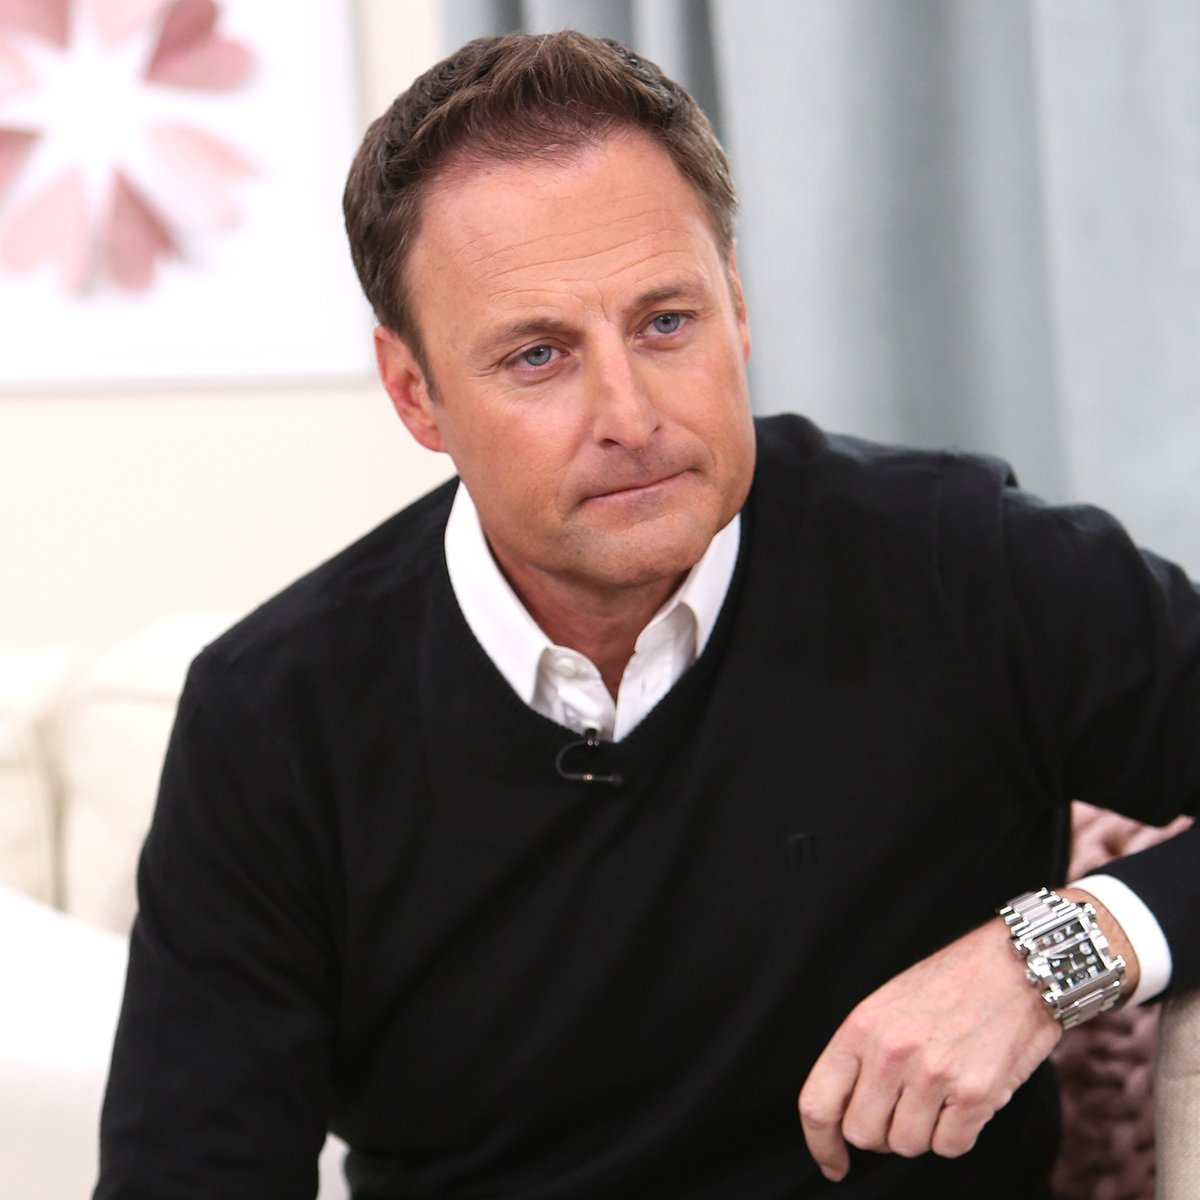 Chris Harrison Shares Plans to Return to The Bachelor After Controversy